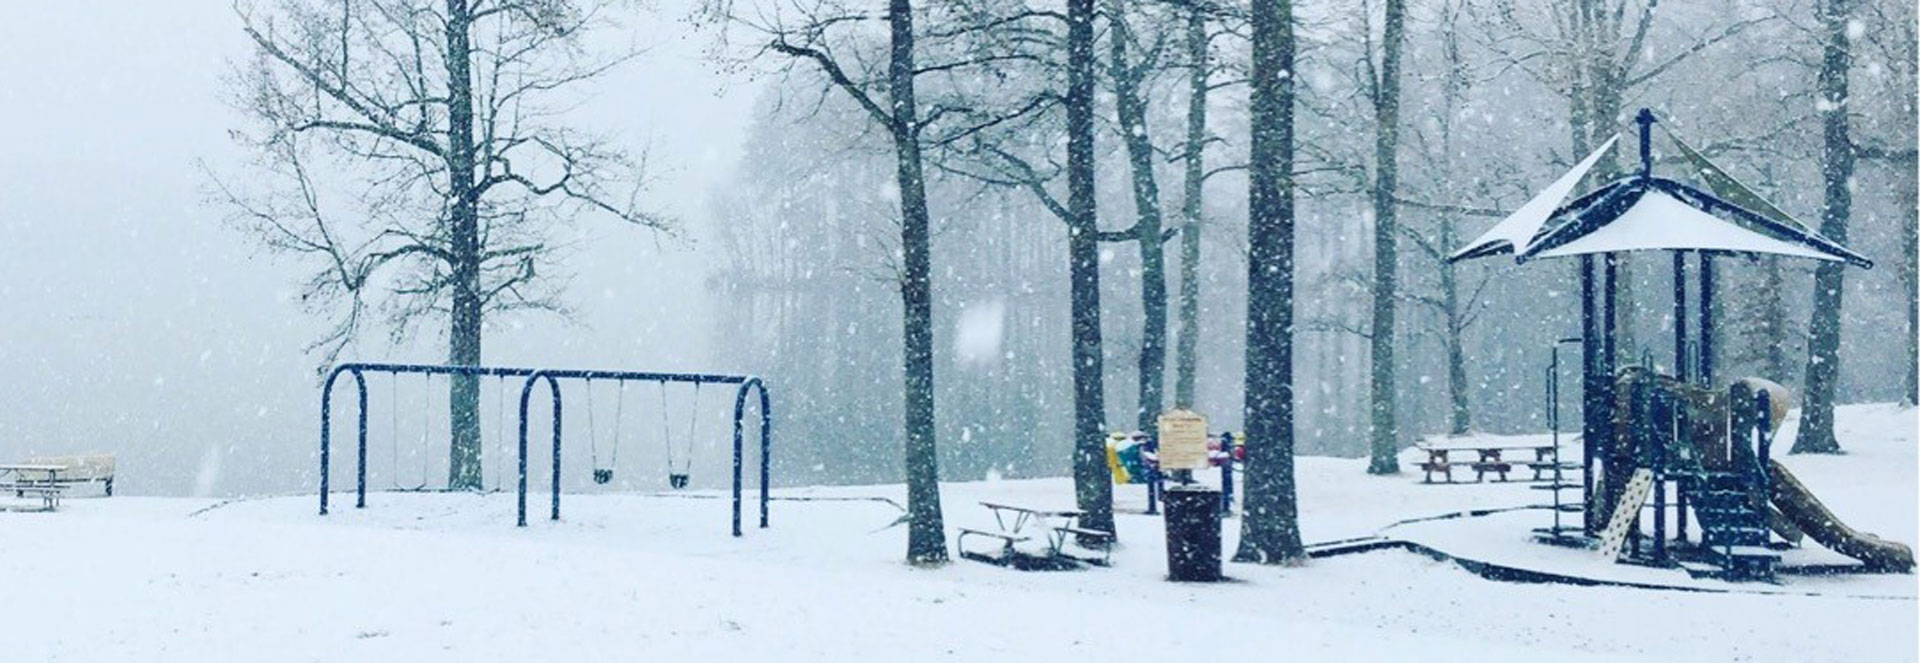 Lake Rogers Snowy Playground